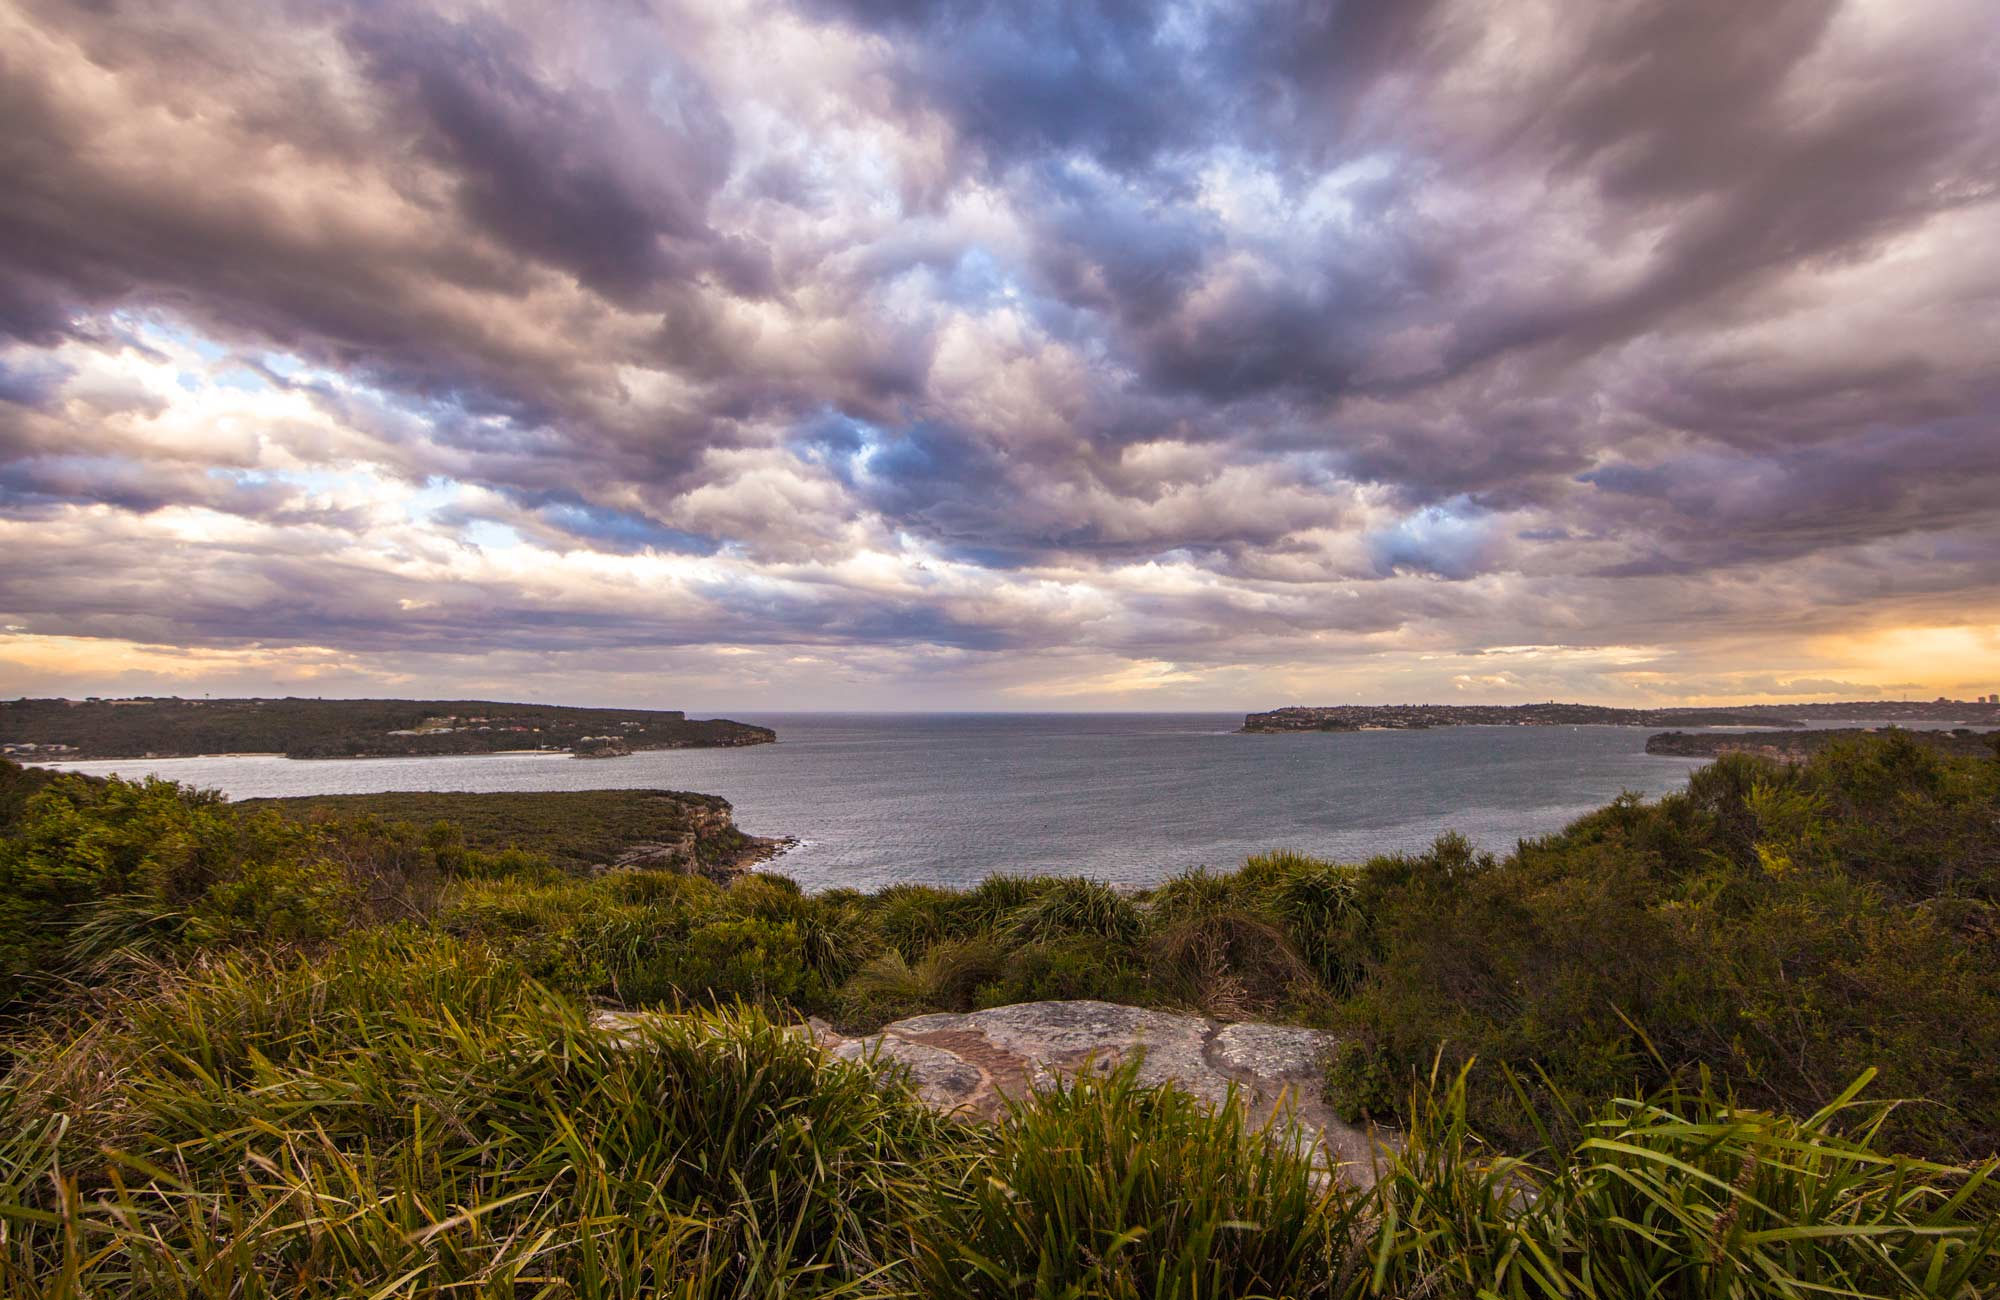 Debroyd Scenic Drive, Sydney Harbour National Park. Photo: David Finnegan